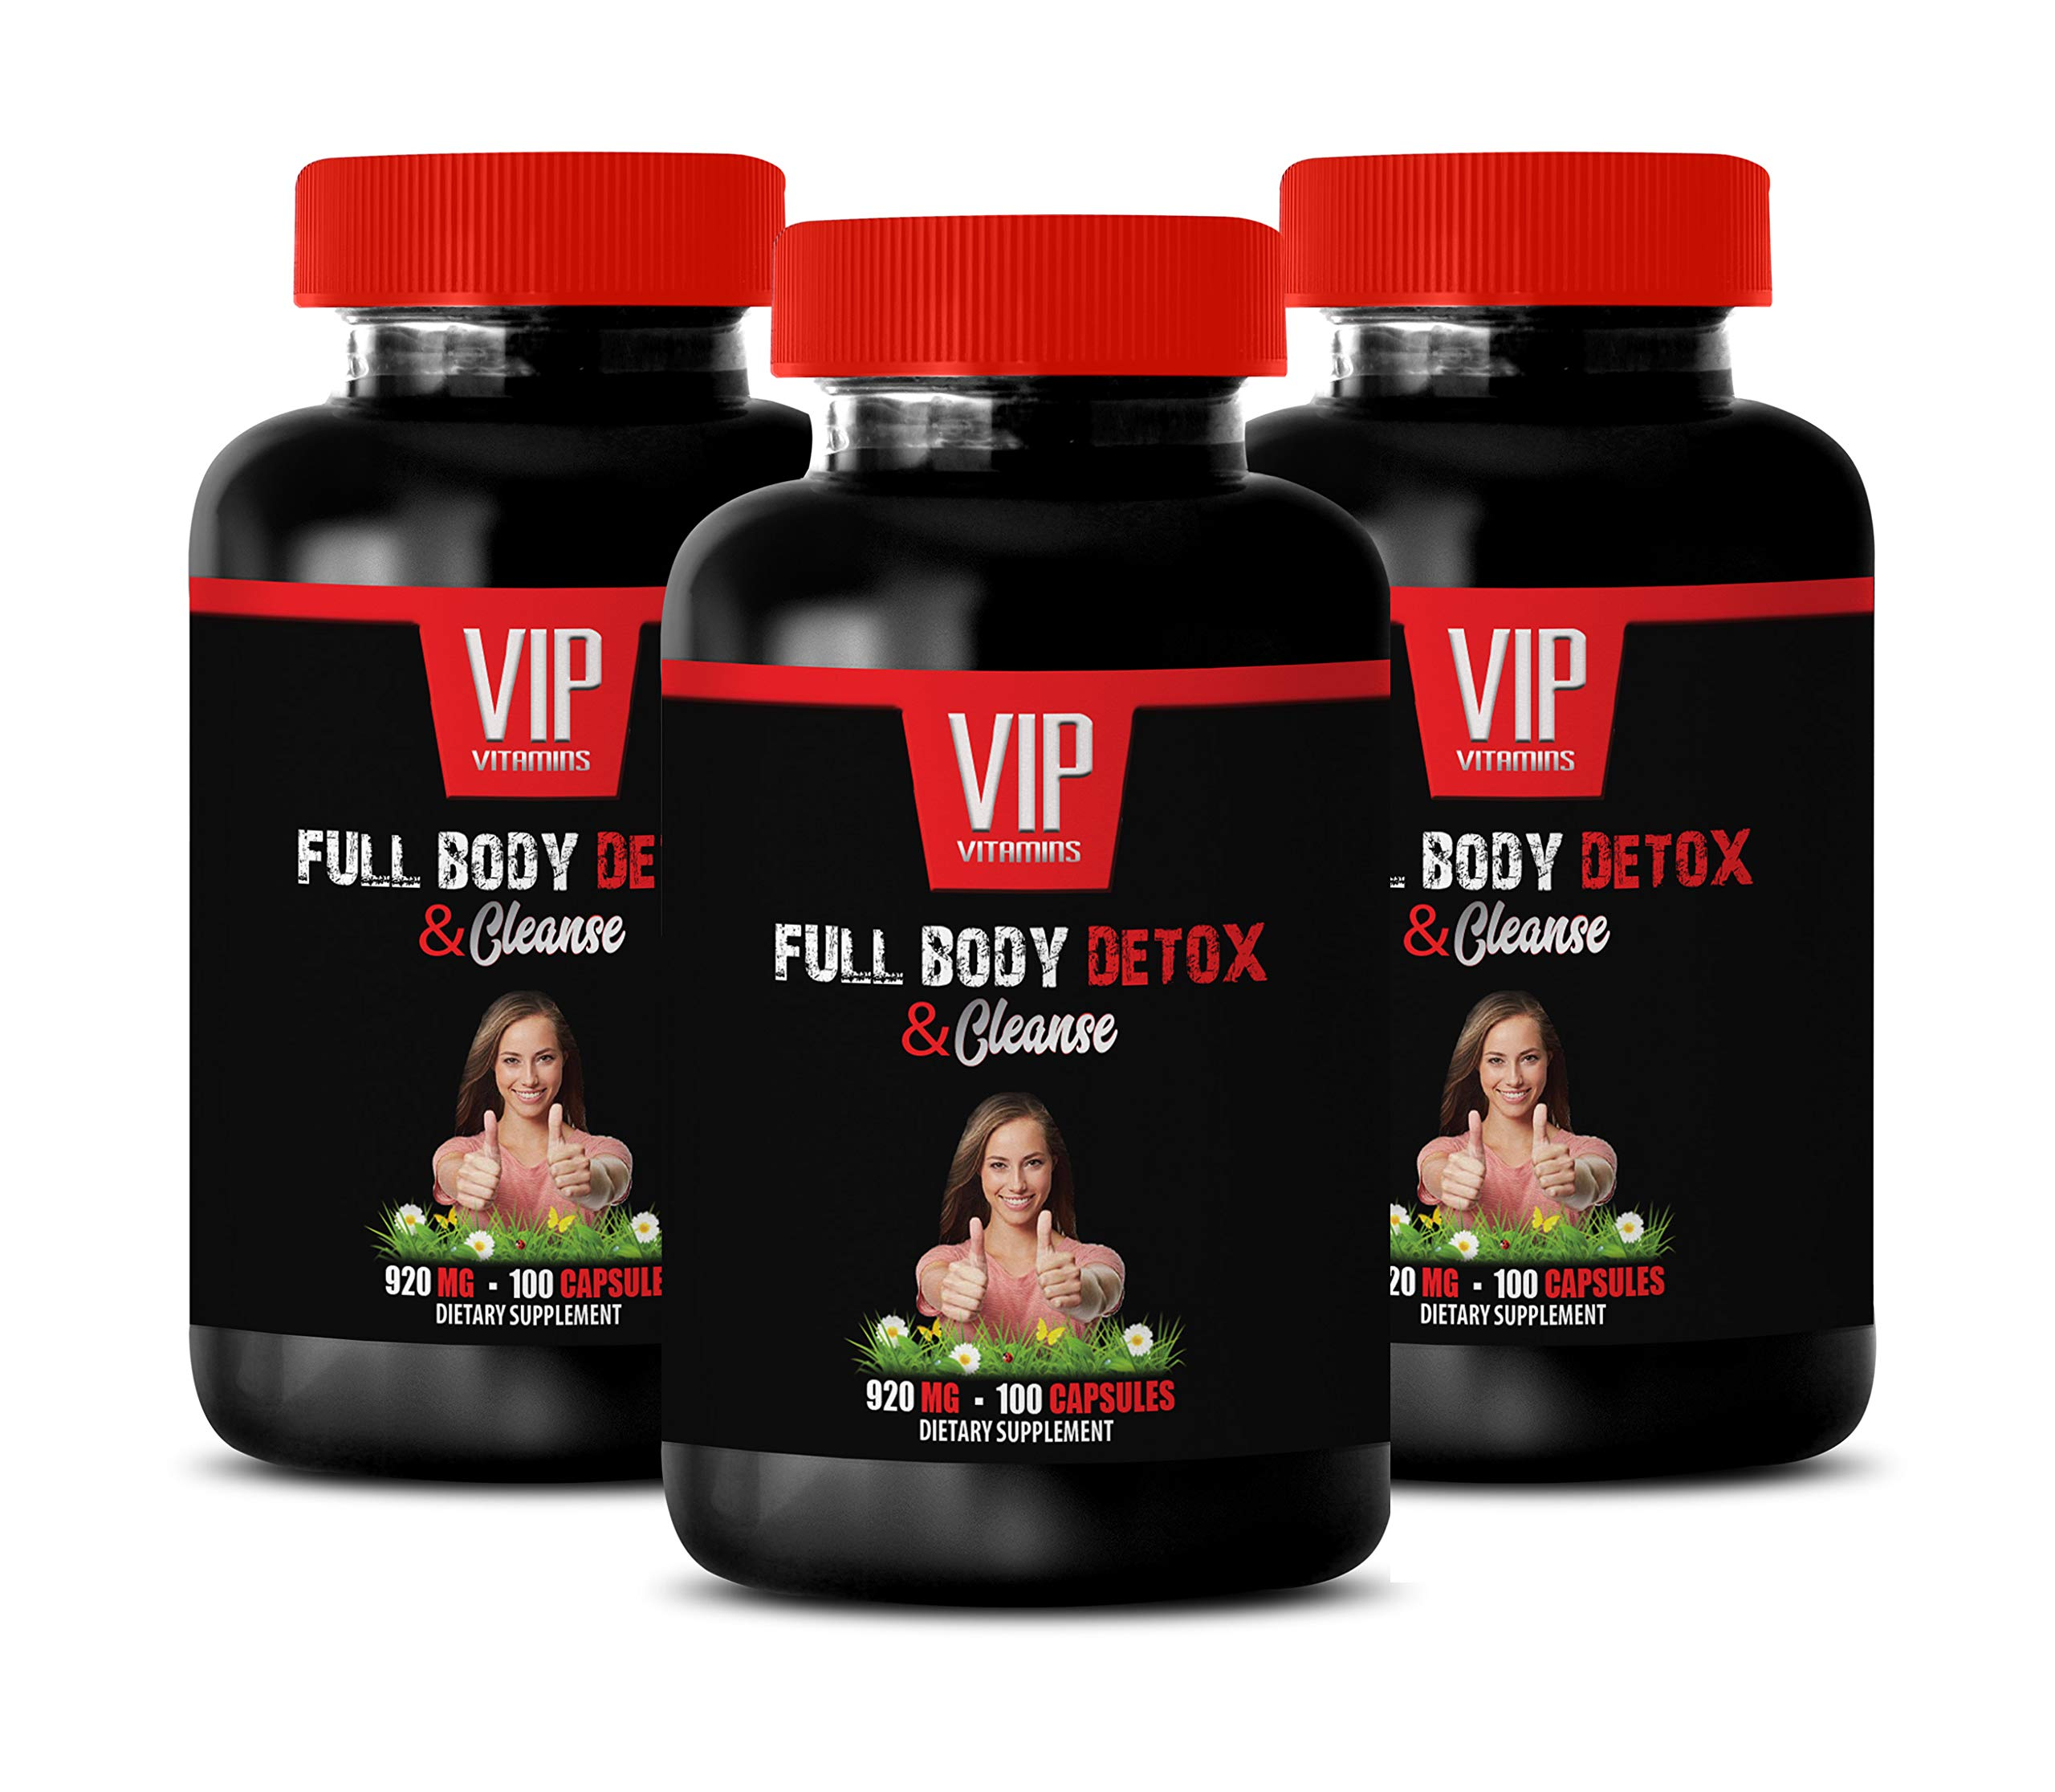 Wellness Supplements for Women - Full Body Detox and Cleanse - Burdock Root Milk Thistle - 3 Bottles 300 Capsules by VIP VITAMINS (Image #1)